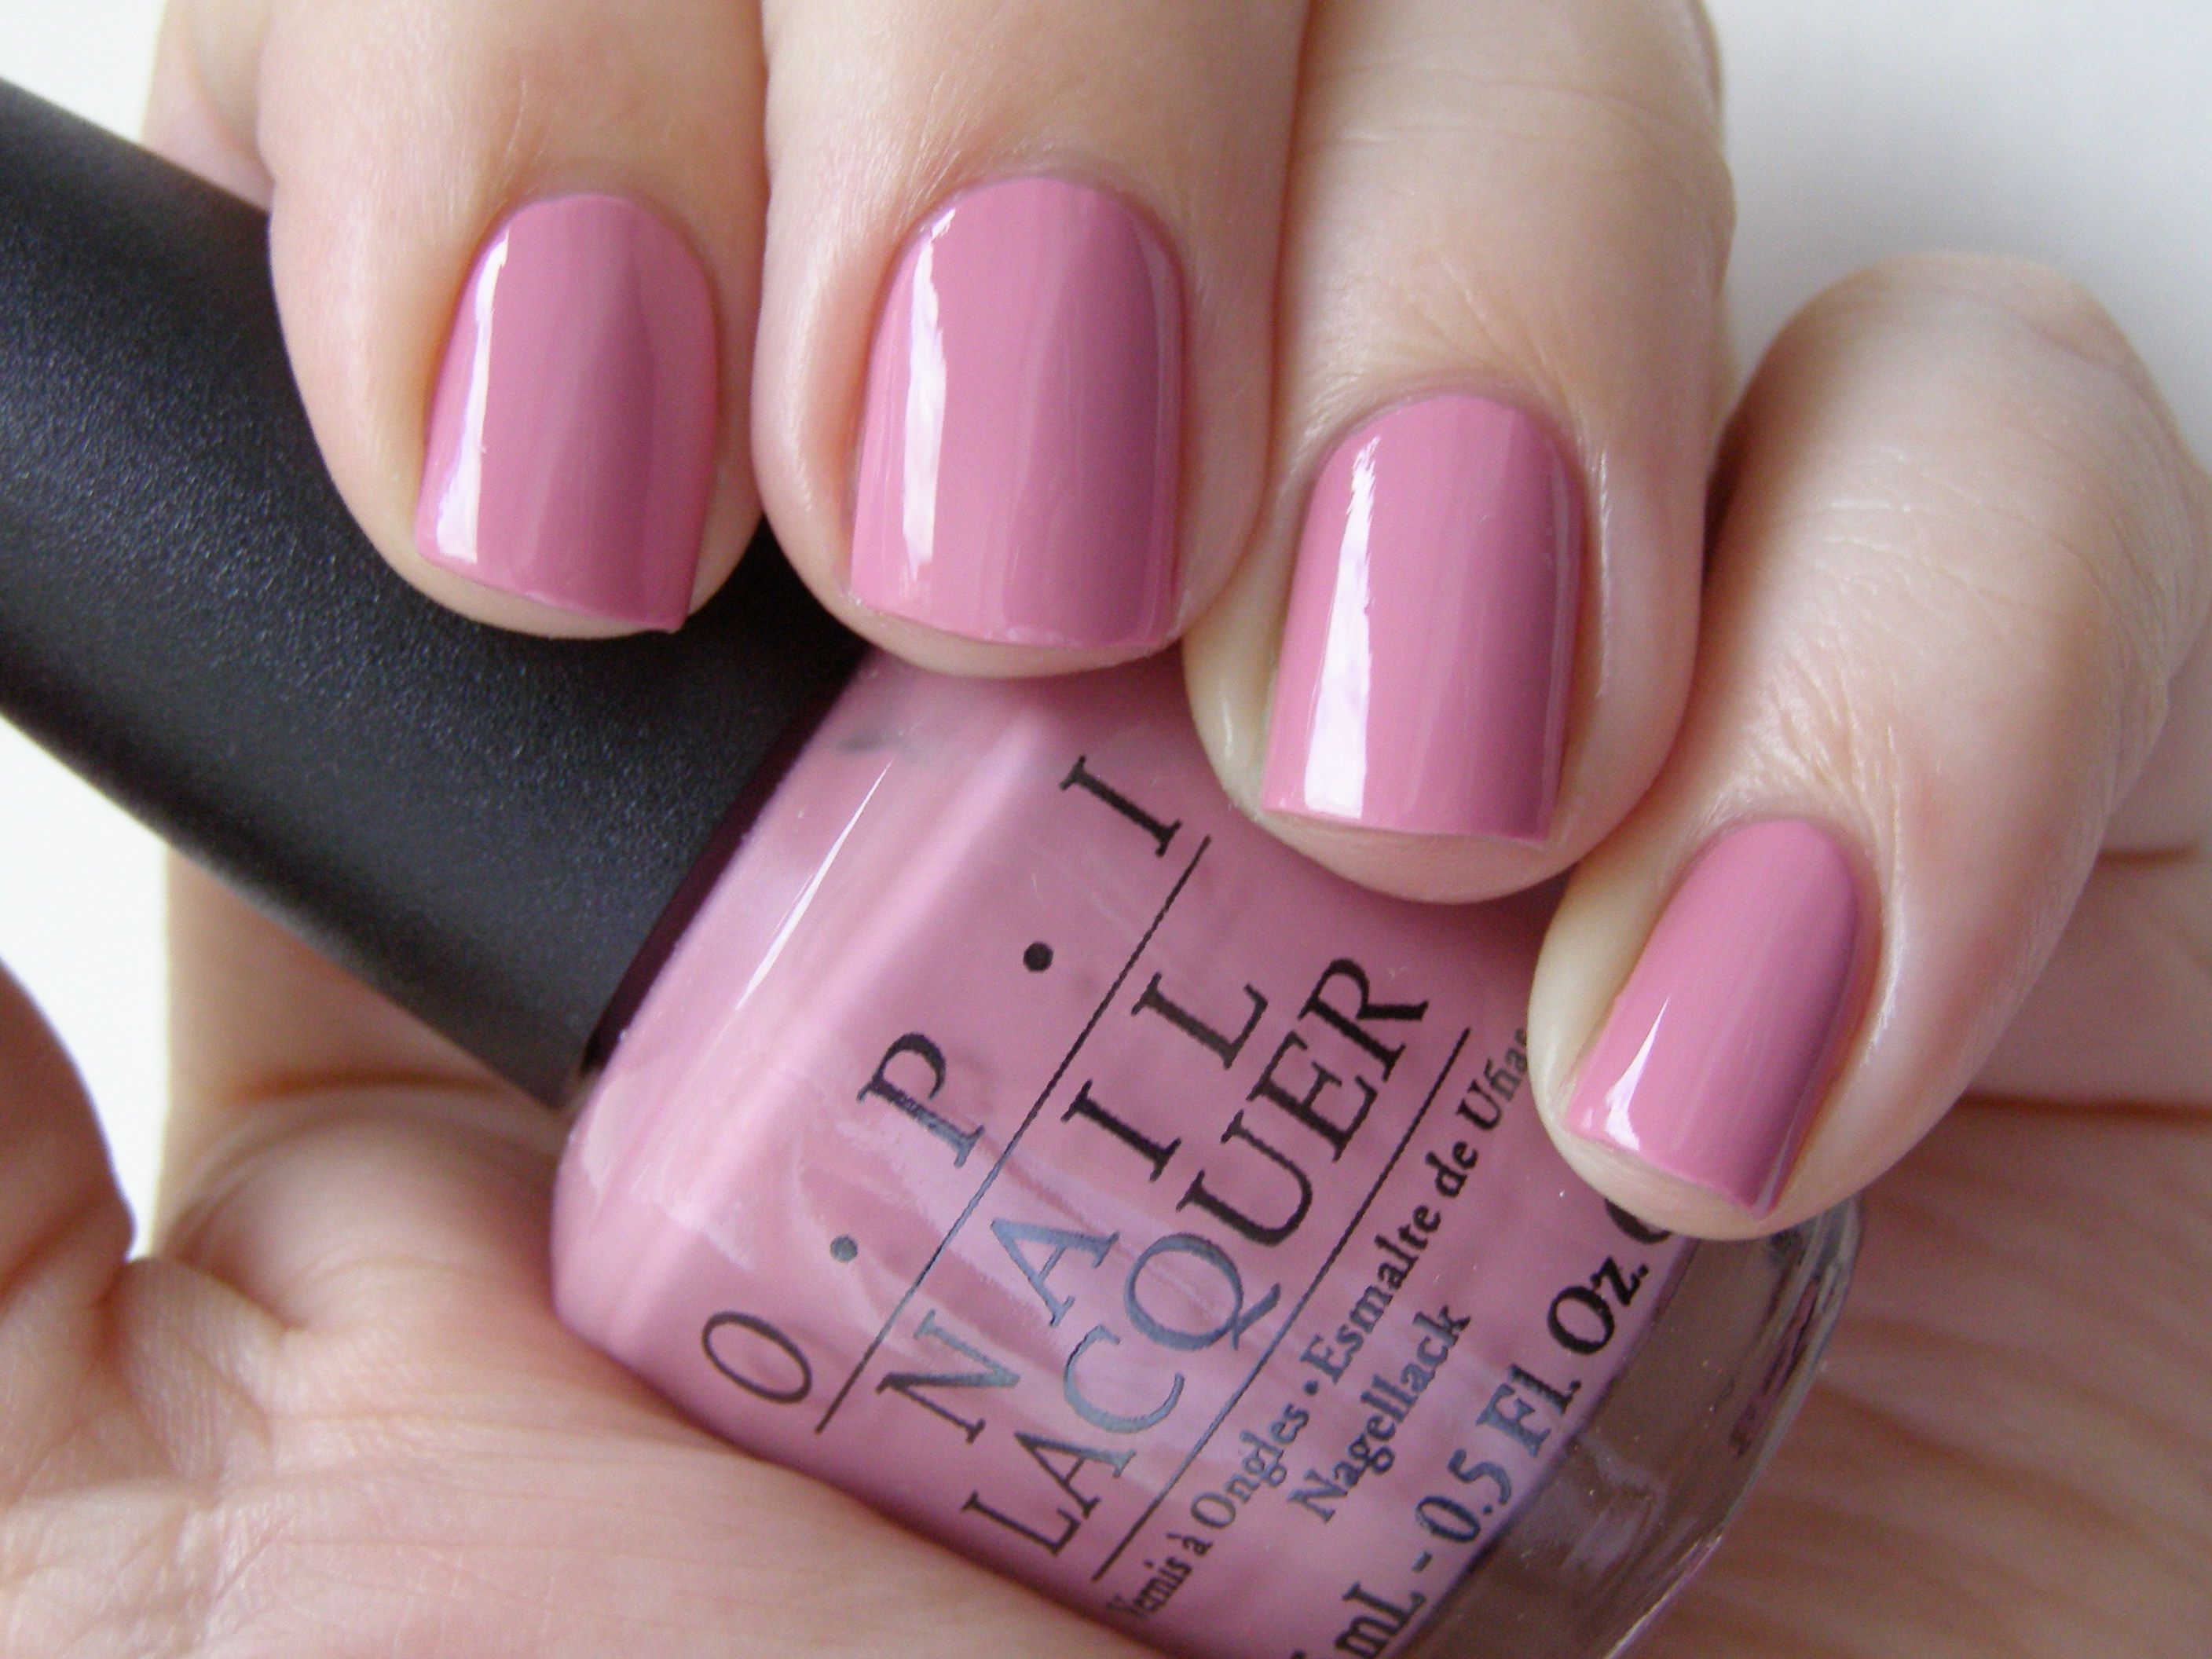 Pretty neutral pink. My favorite everyday nail color. OPI Sparrow Me The Drama